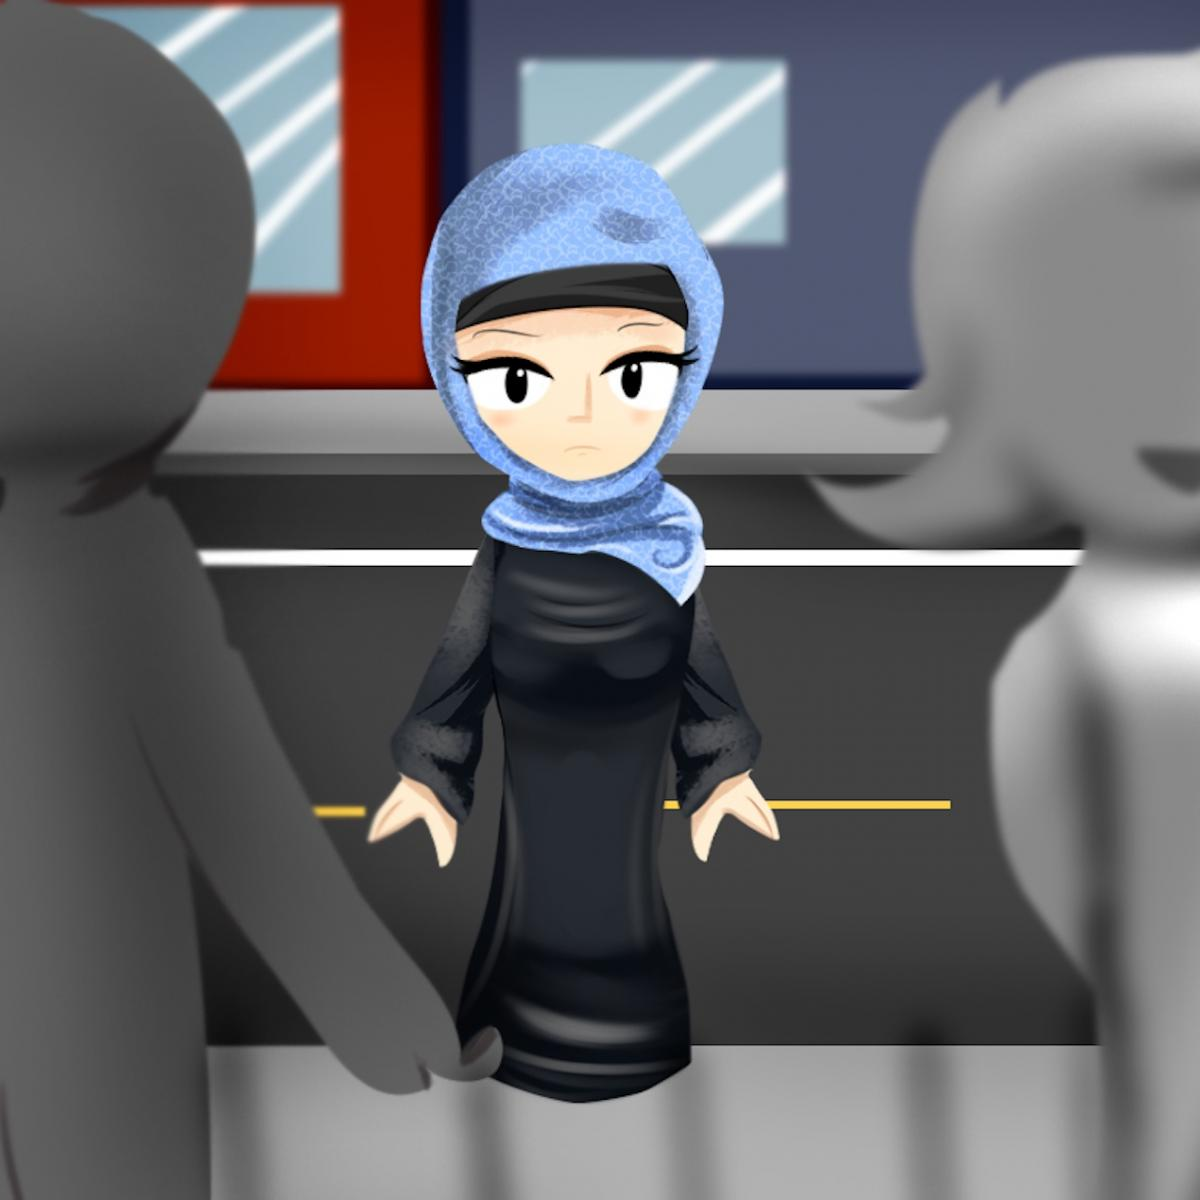 Drawing of a Muslim girl in a hijab walking in between a crowd.